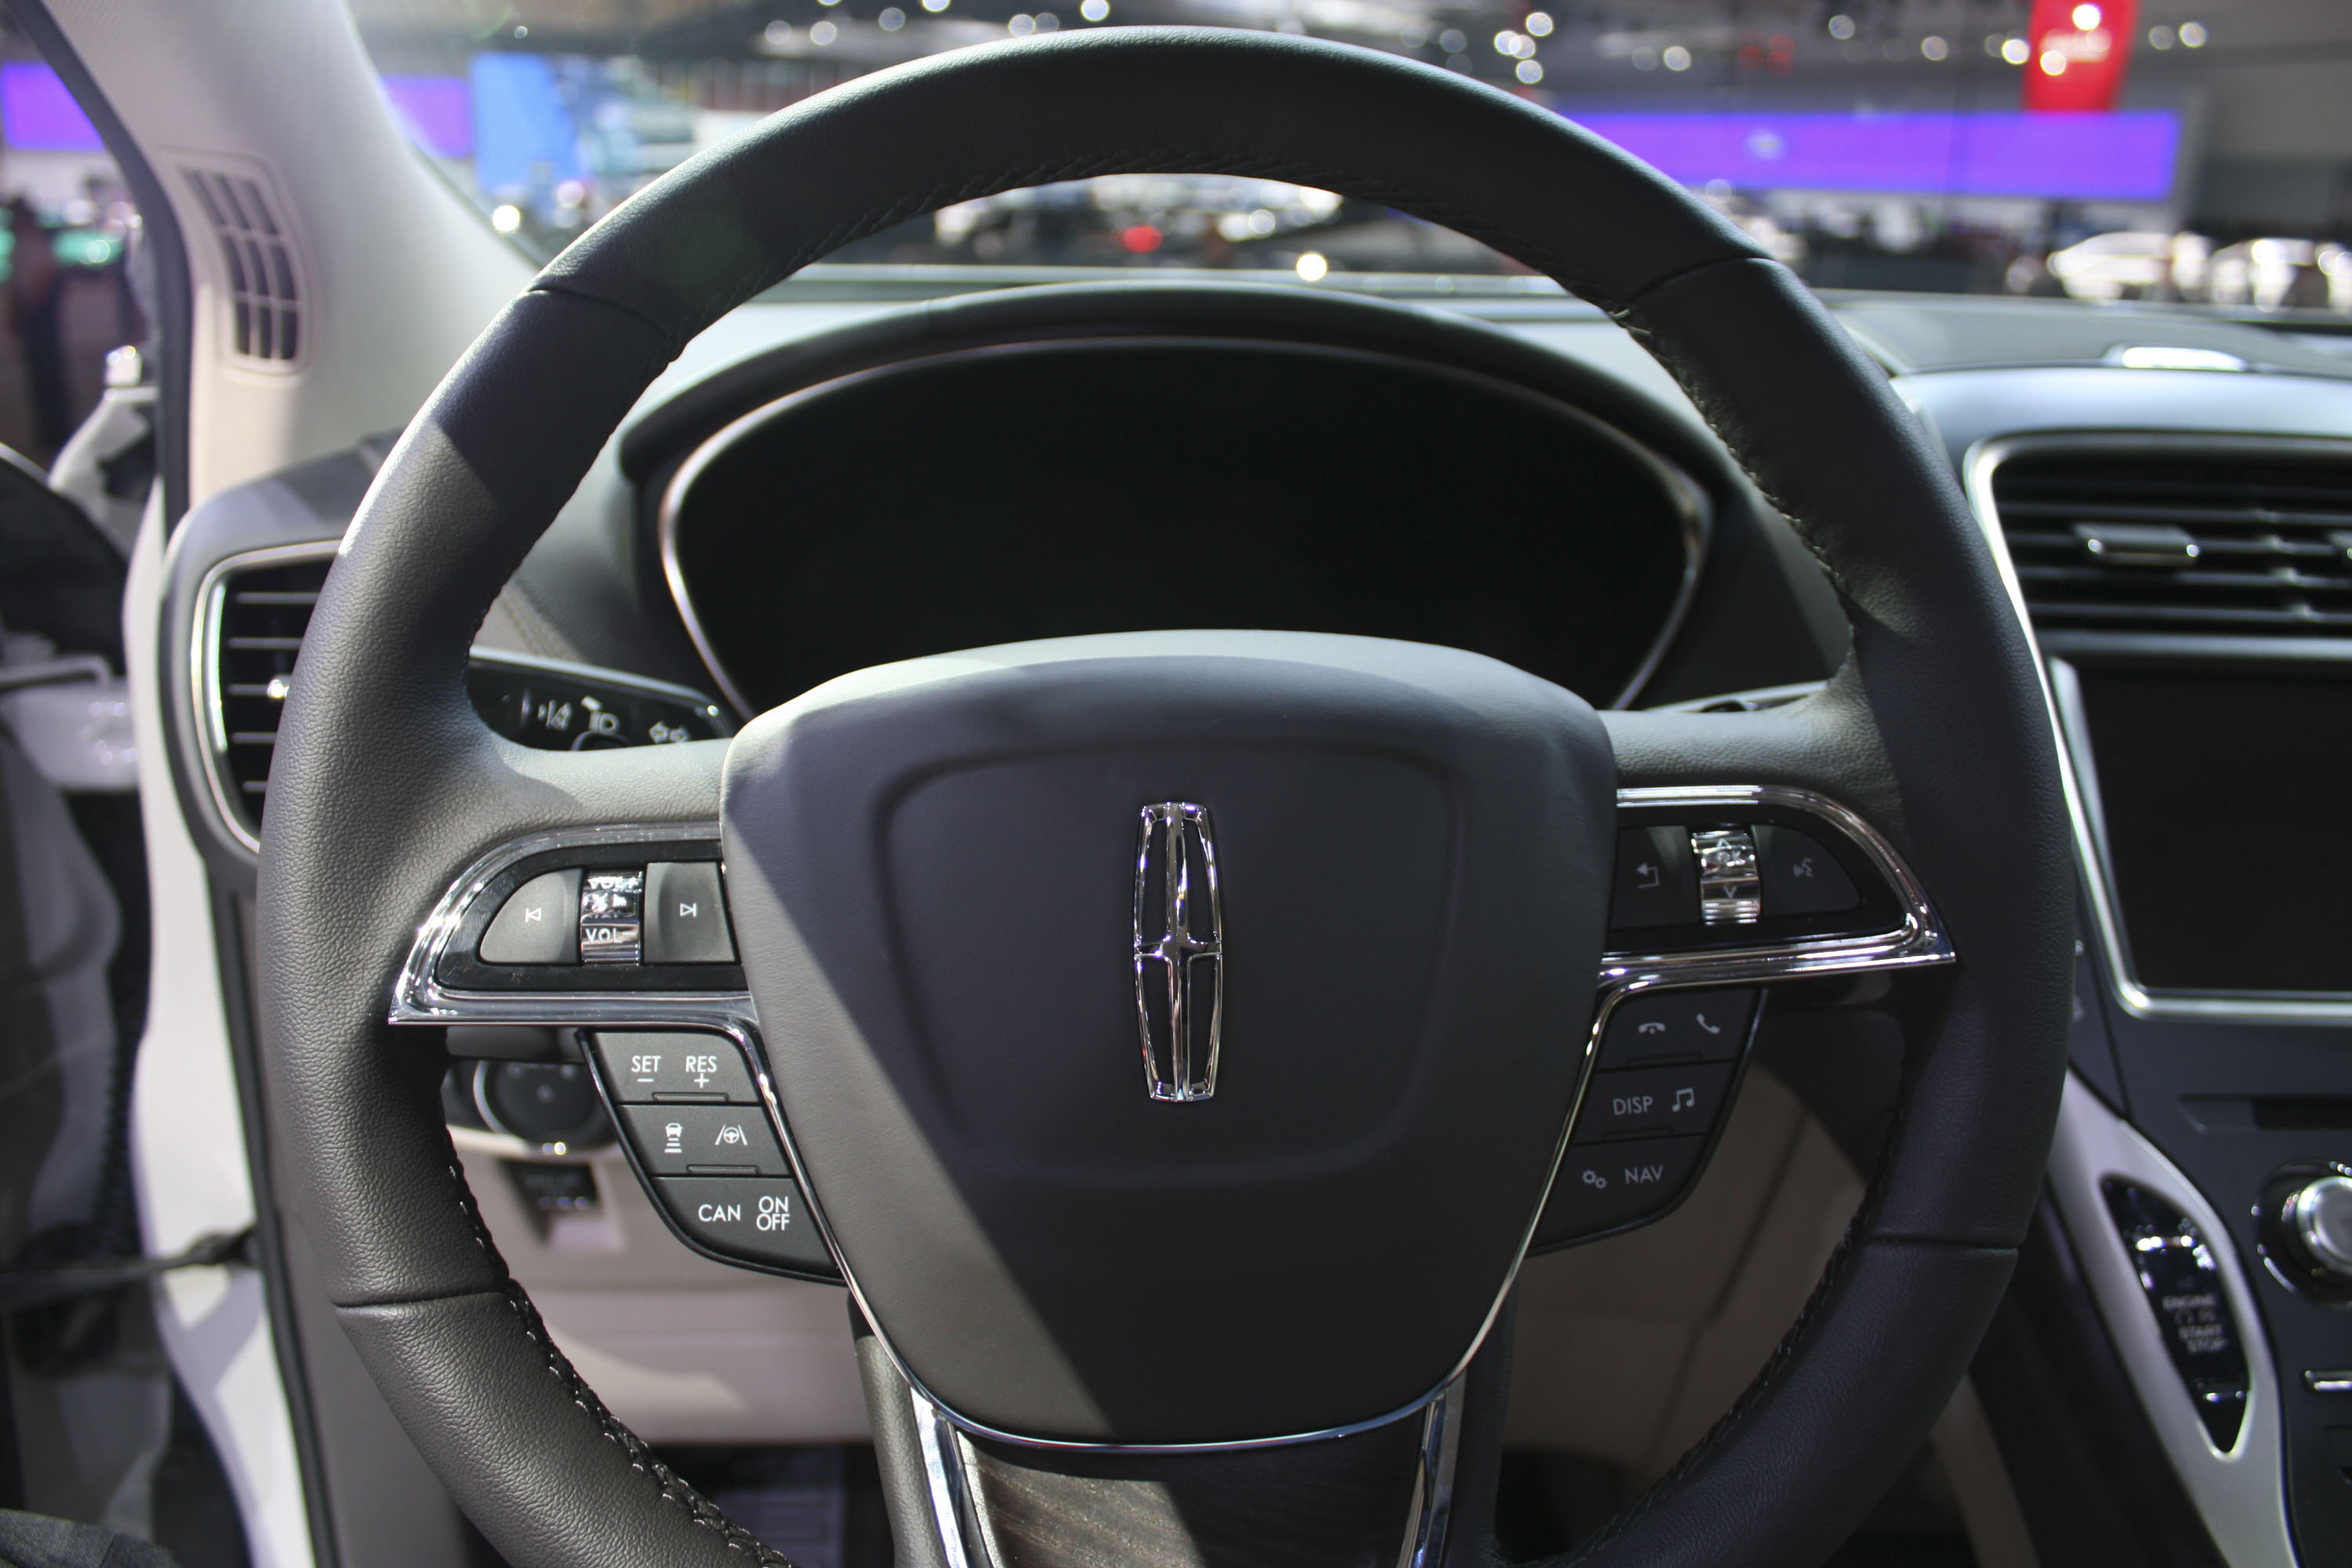 powerful with products us assist crossovers driver new suvs nautilus assistance lincoln content unveiled en lna performance pairs lincolnmedia roadside